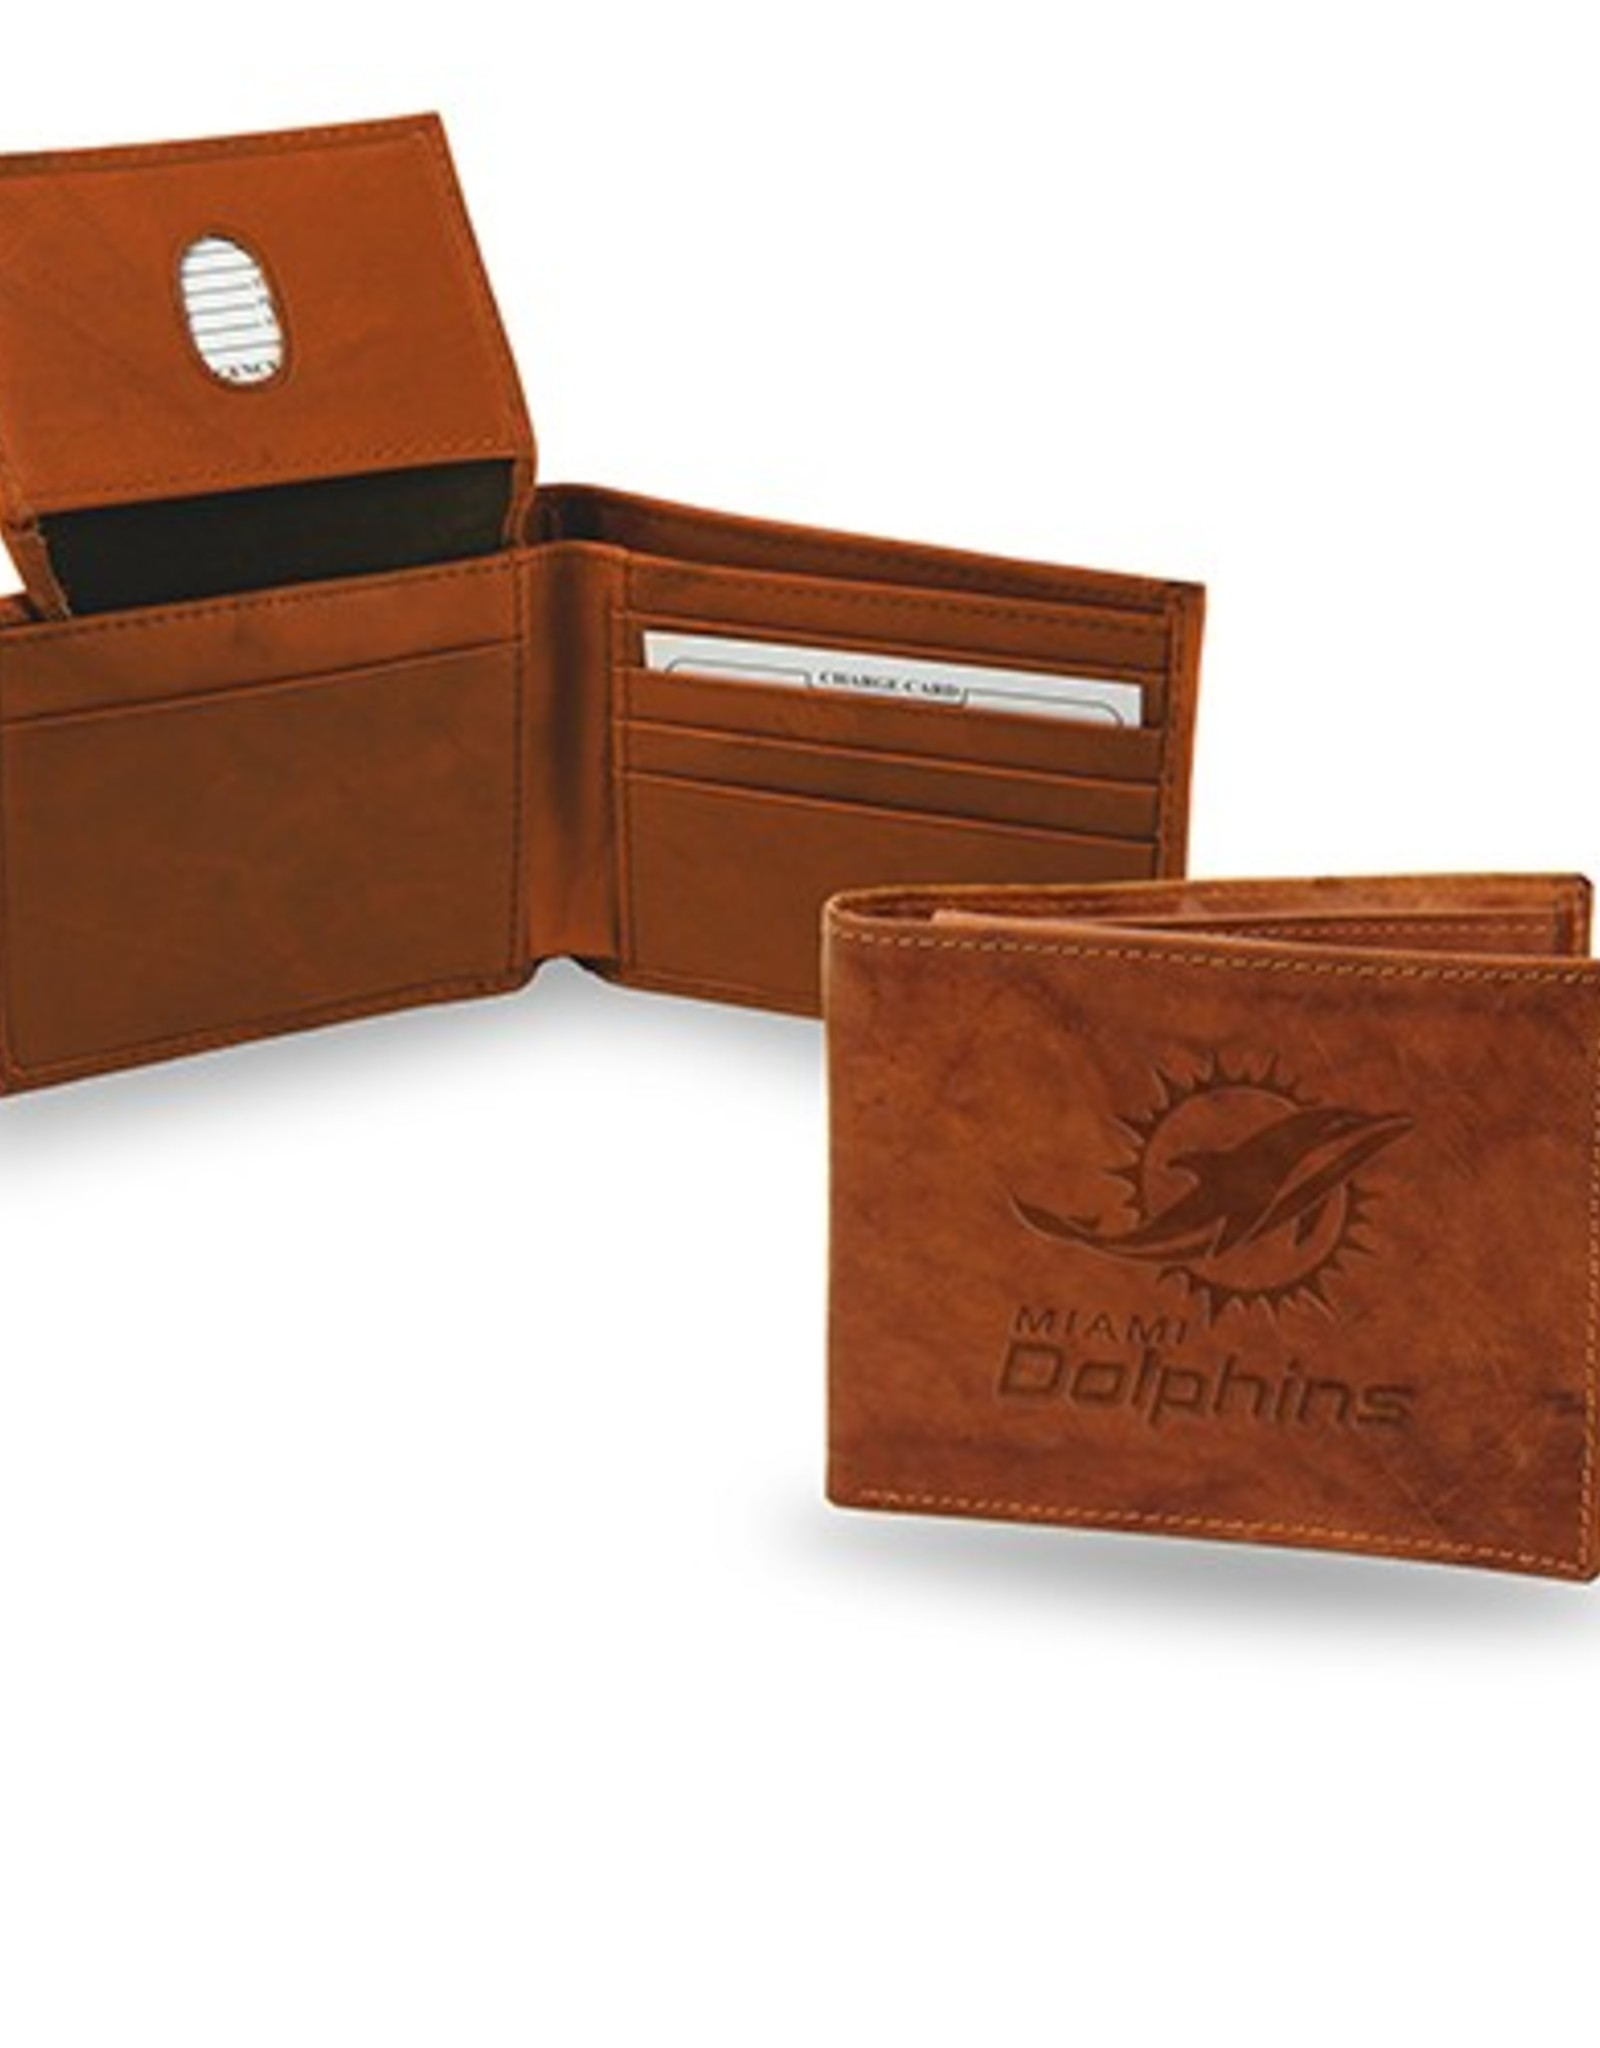 RICO INDUSTRIES Miami Dolphins Genuine Leather Vintage Billfold Wallet